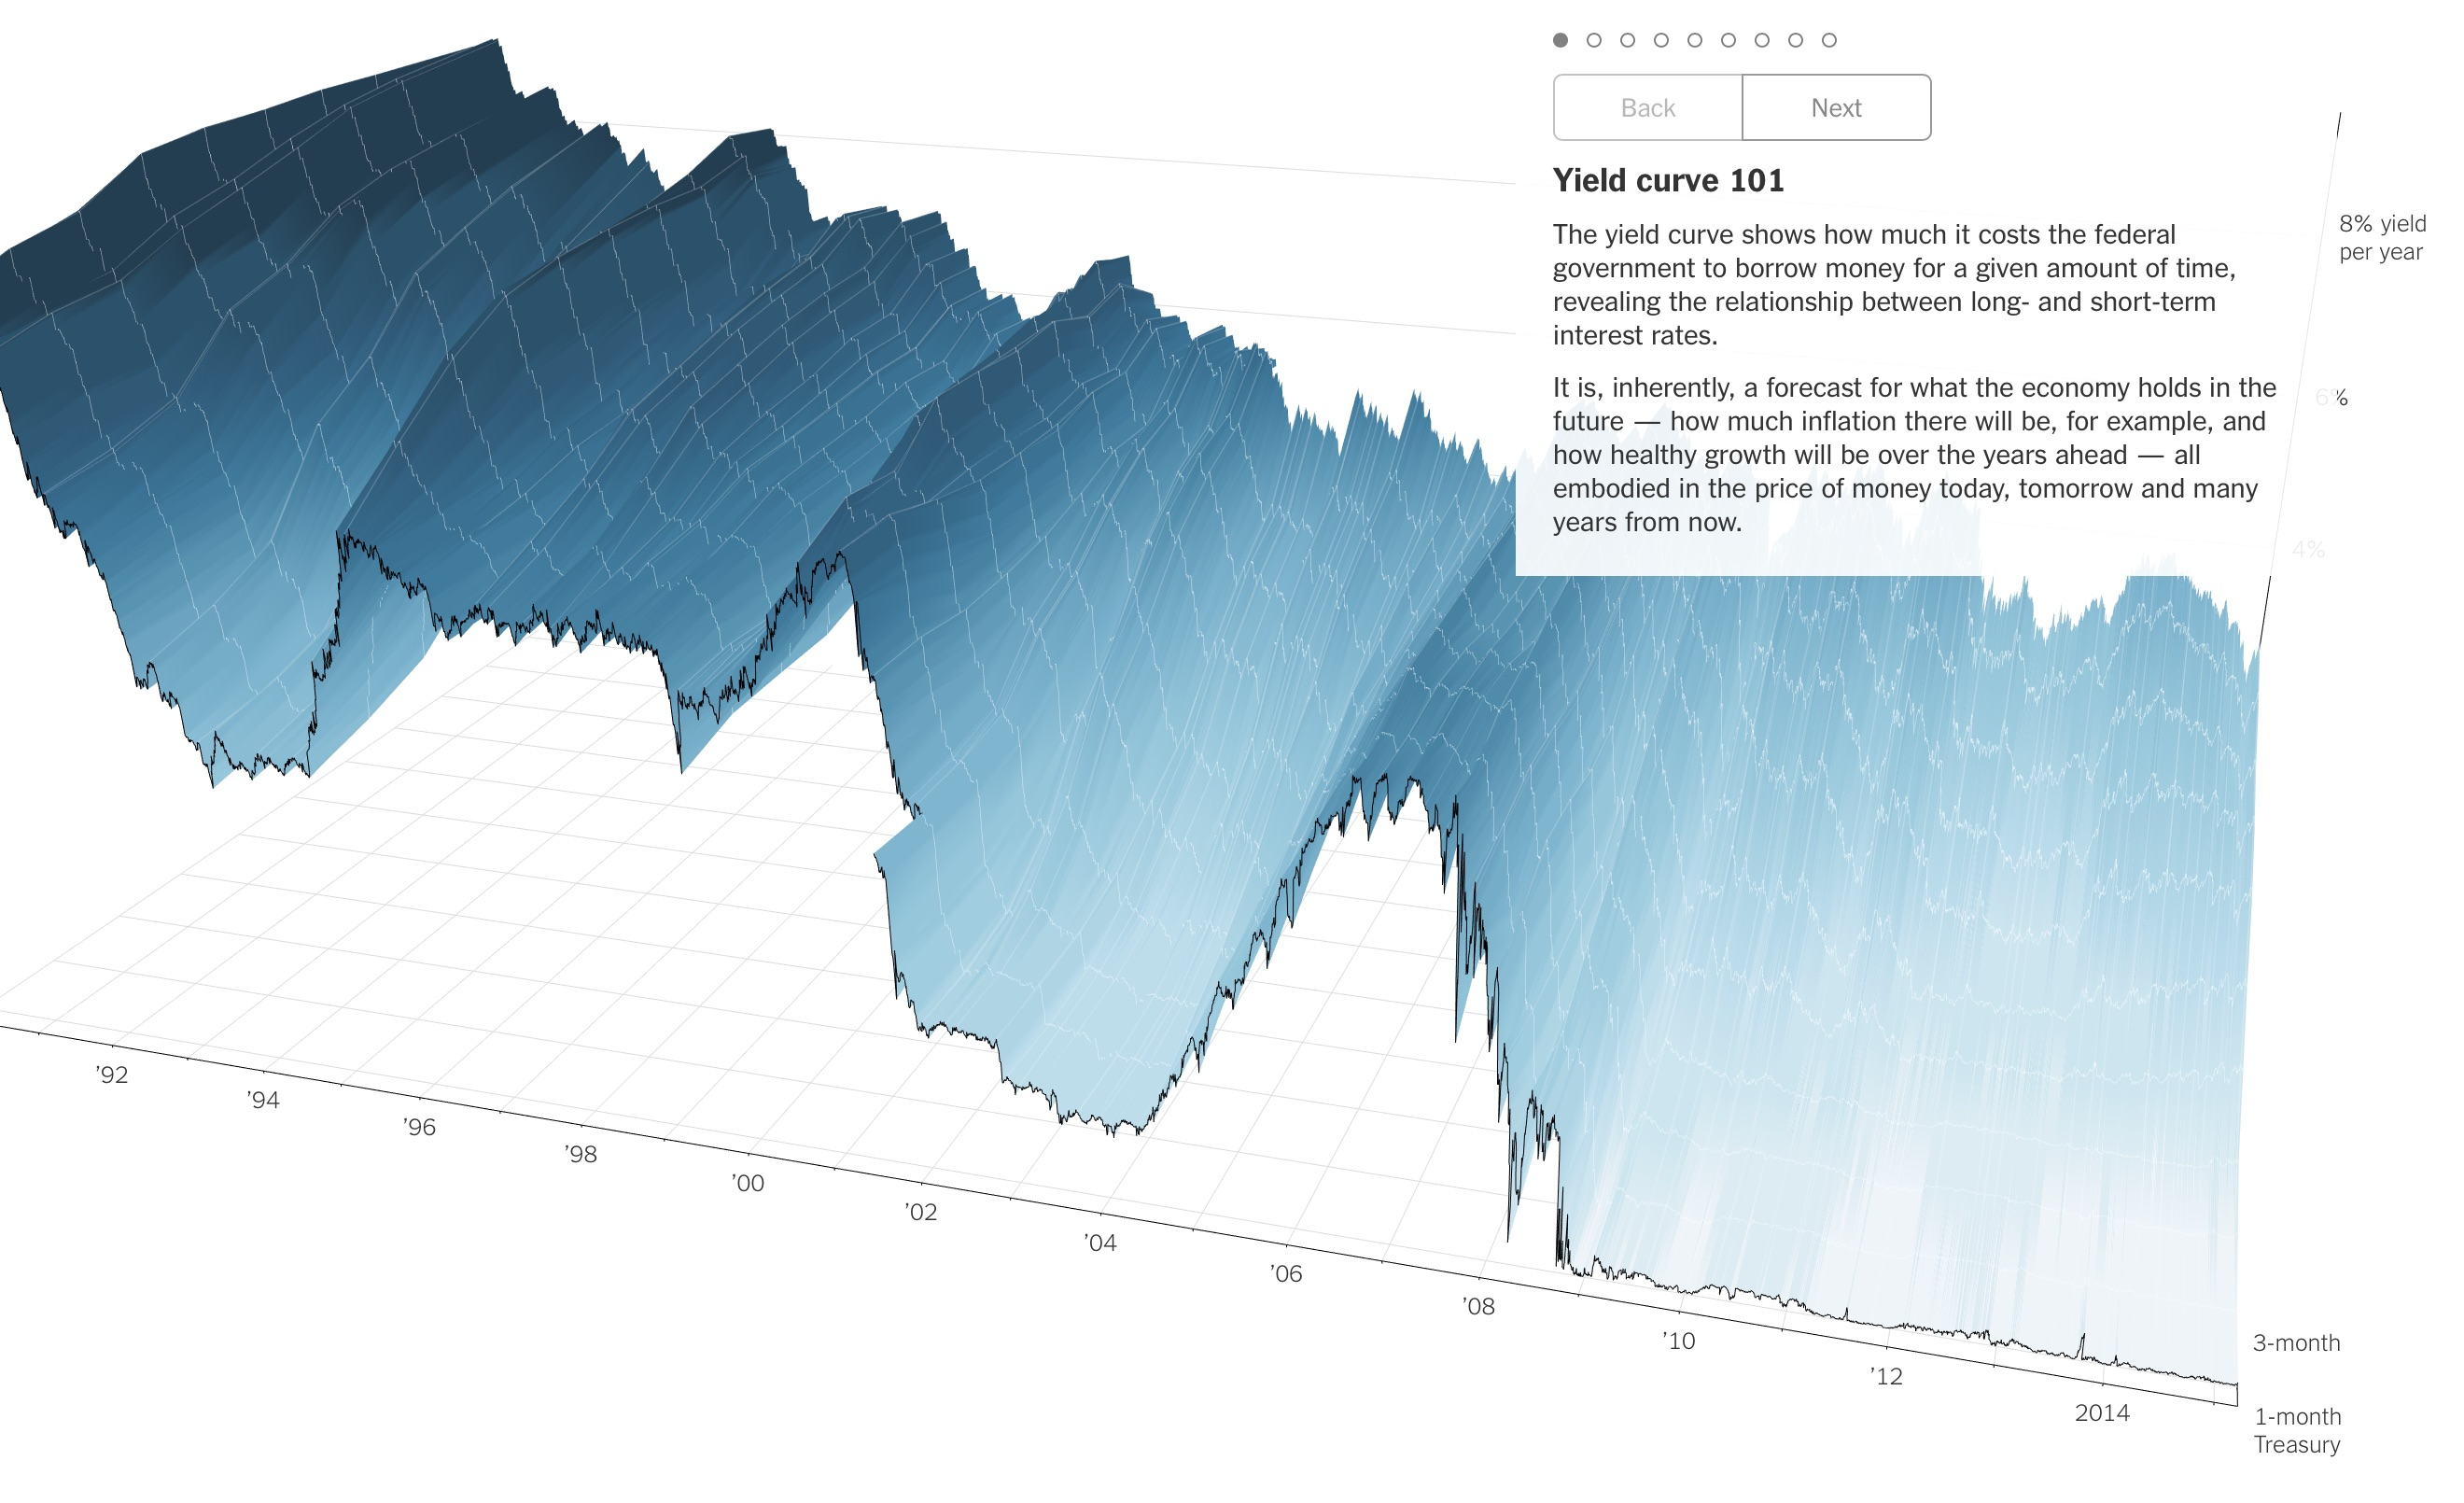 Uncharted Territory: Diving into Data Visualization in Virtual Reality